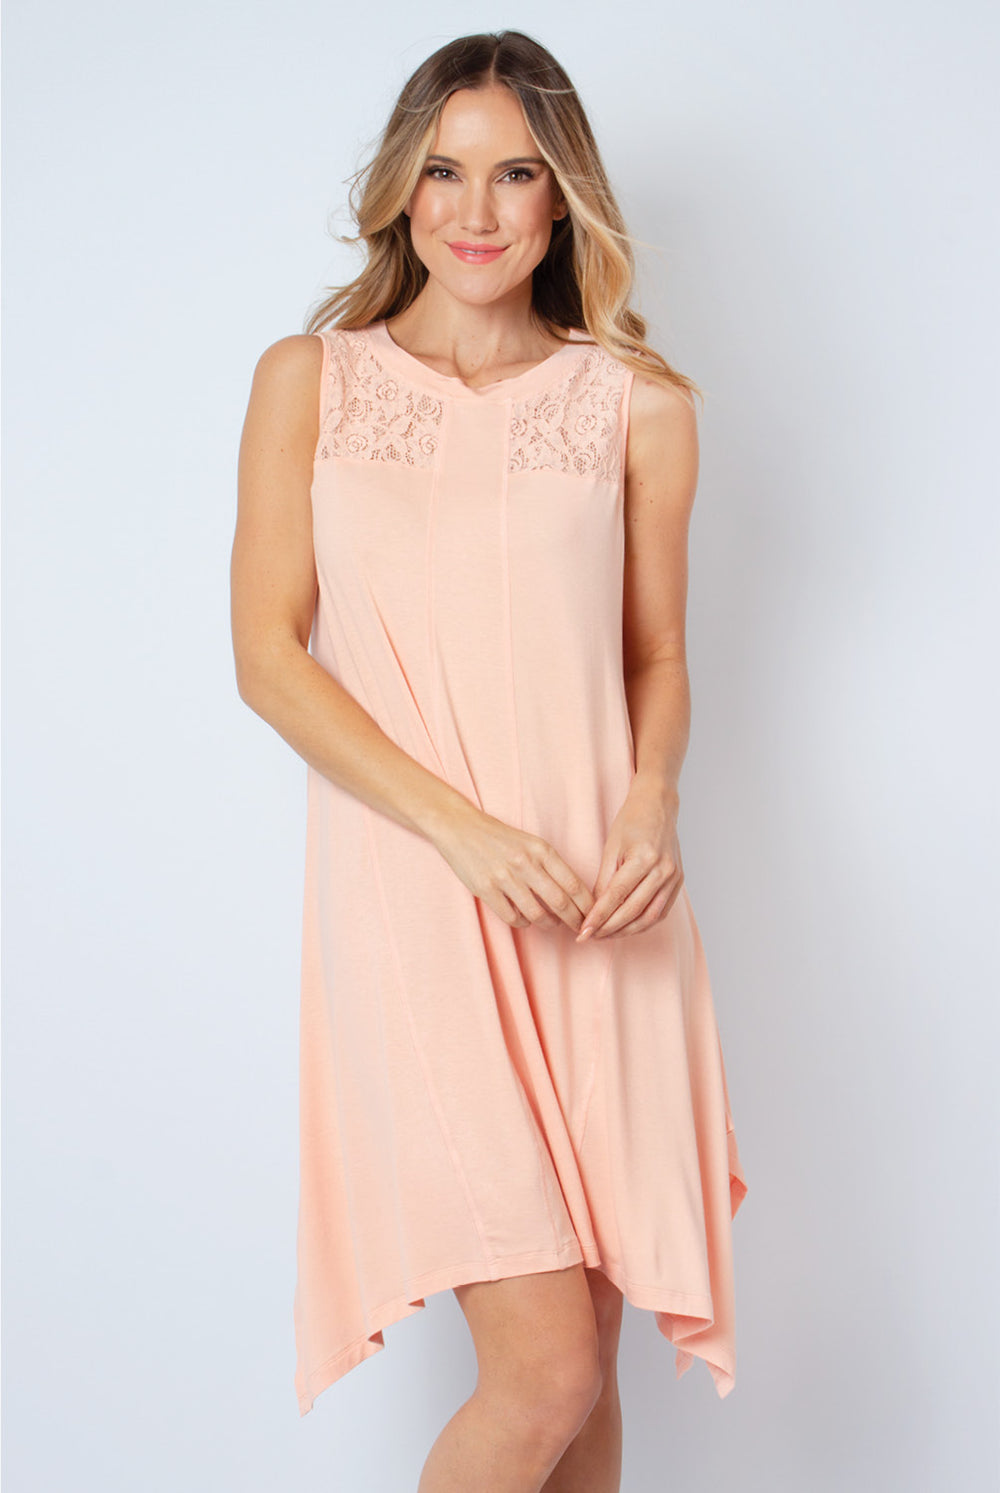 Summer Bliss Lace Knit Dress